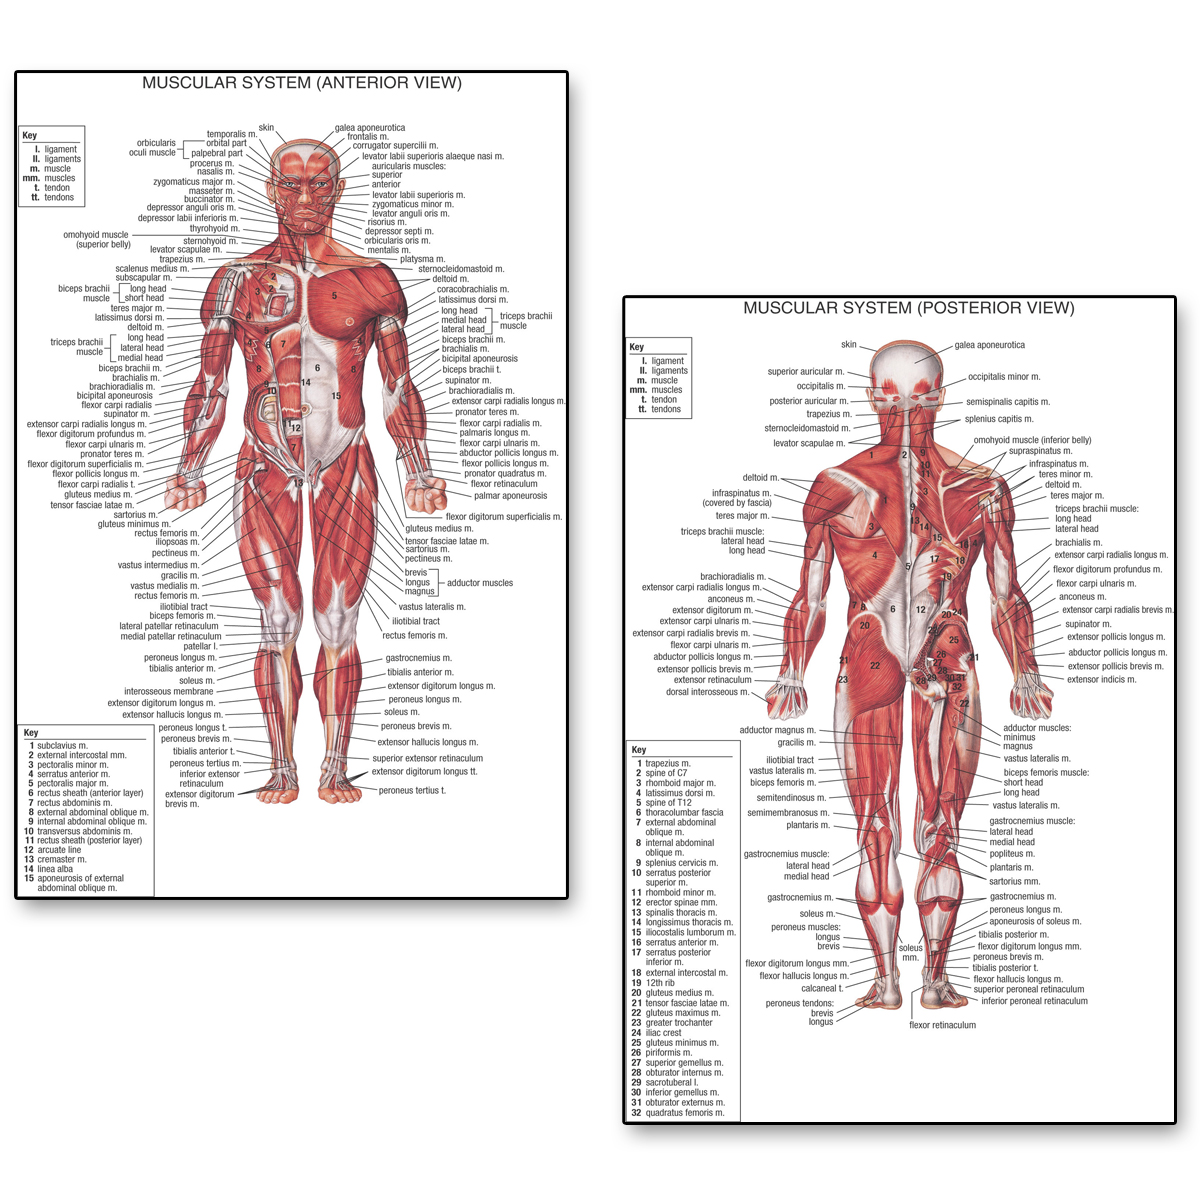 Human Anatomy Posterior Anterior View  Anatomy Muscles System Art Posters Silk Fabric Print For Medical Classroom Study Decor